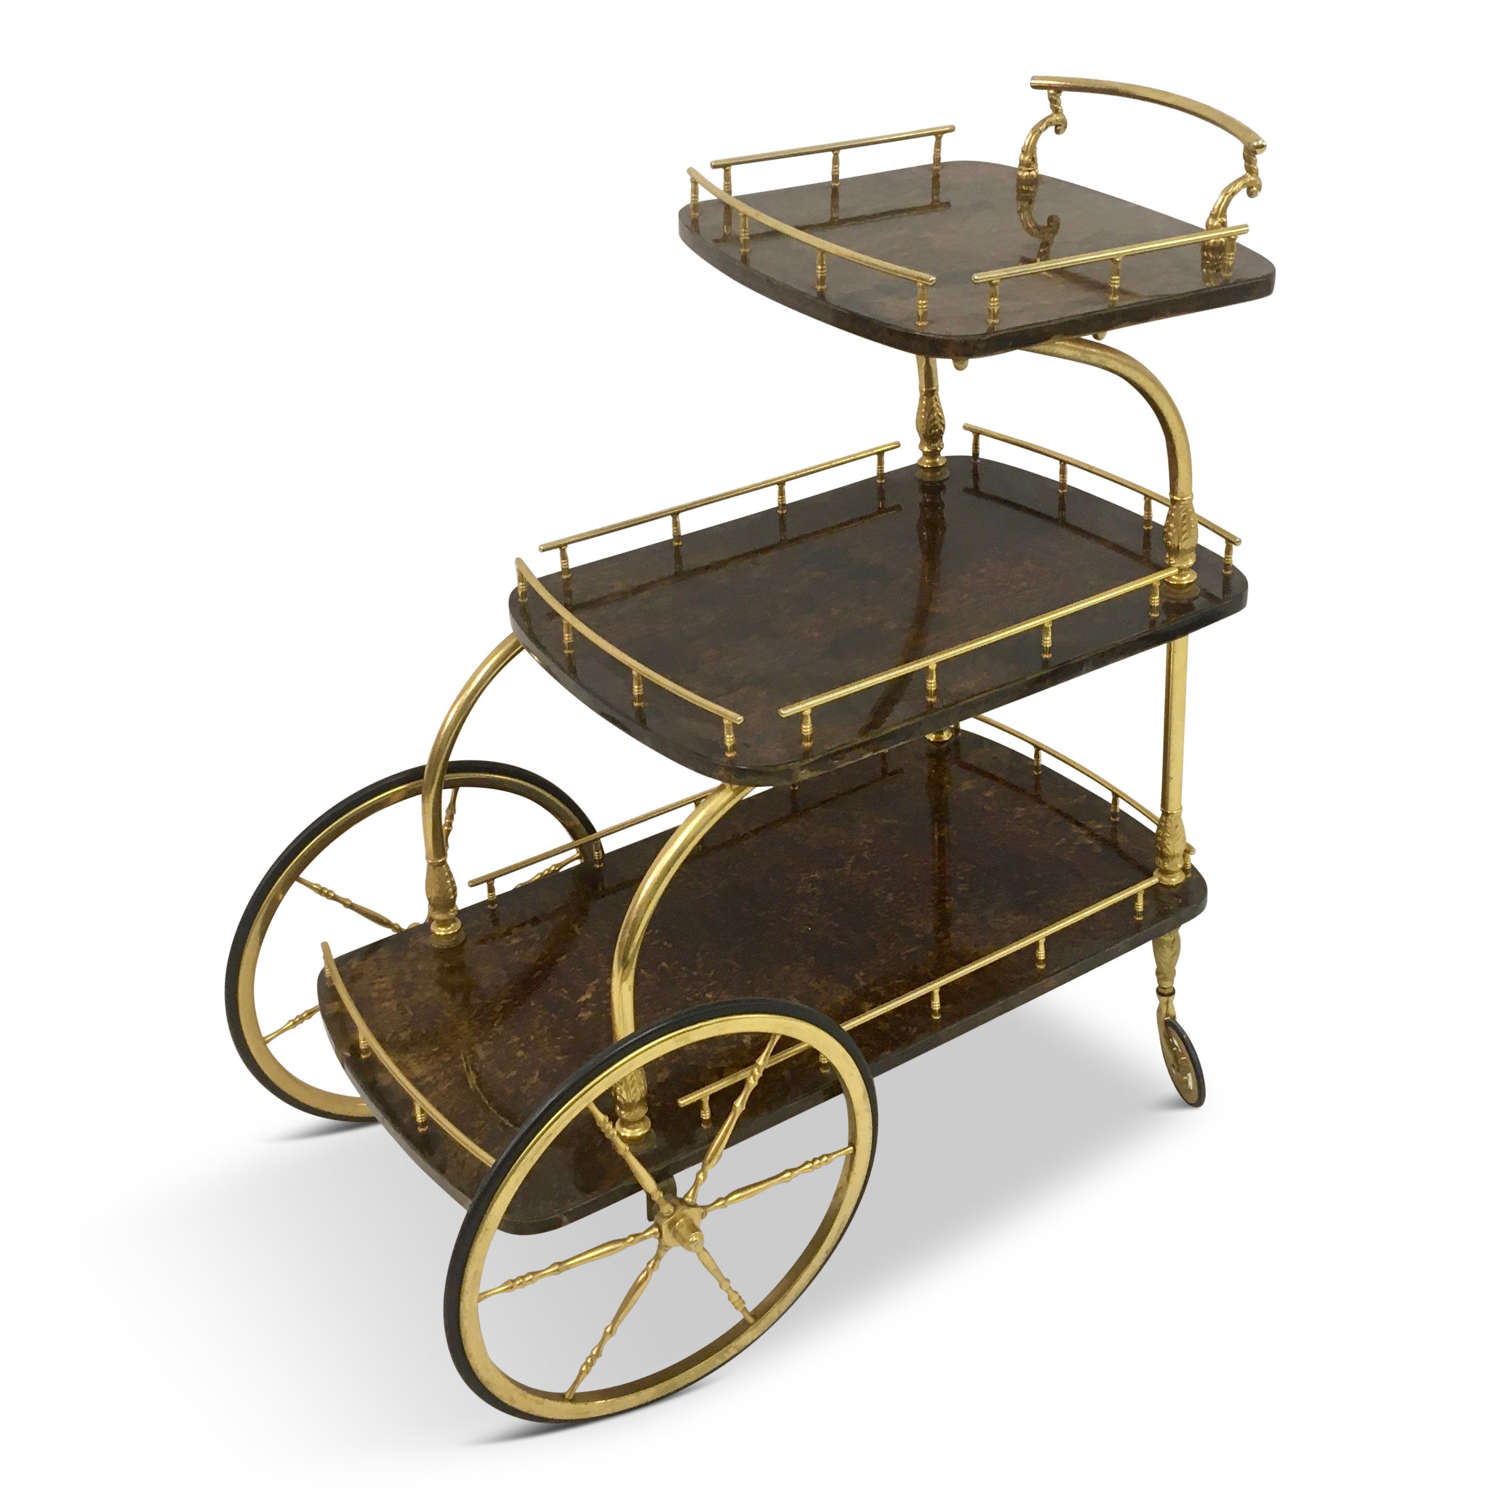 1950s Italian lacquered goatskin and gilt metal trolley by Aldo Tura